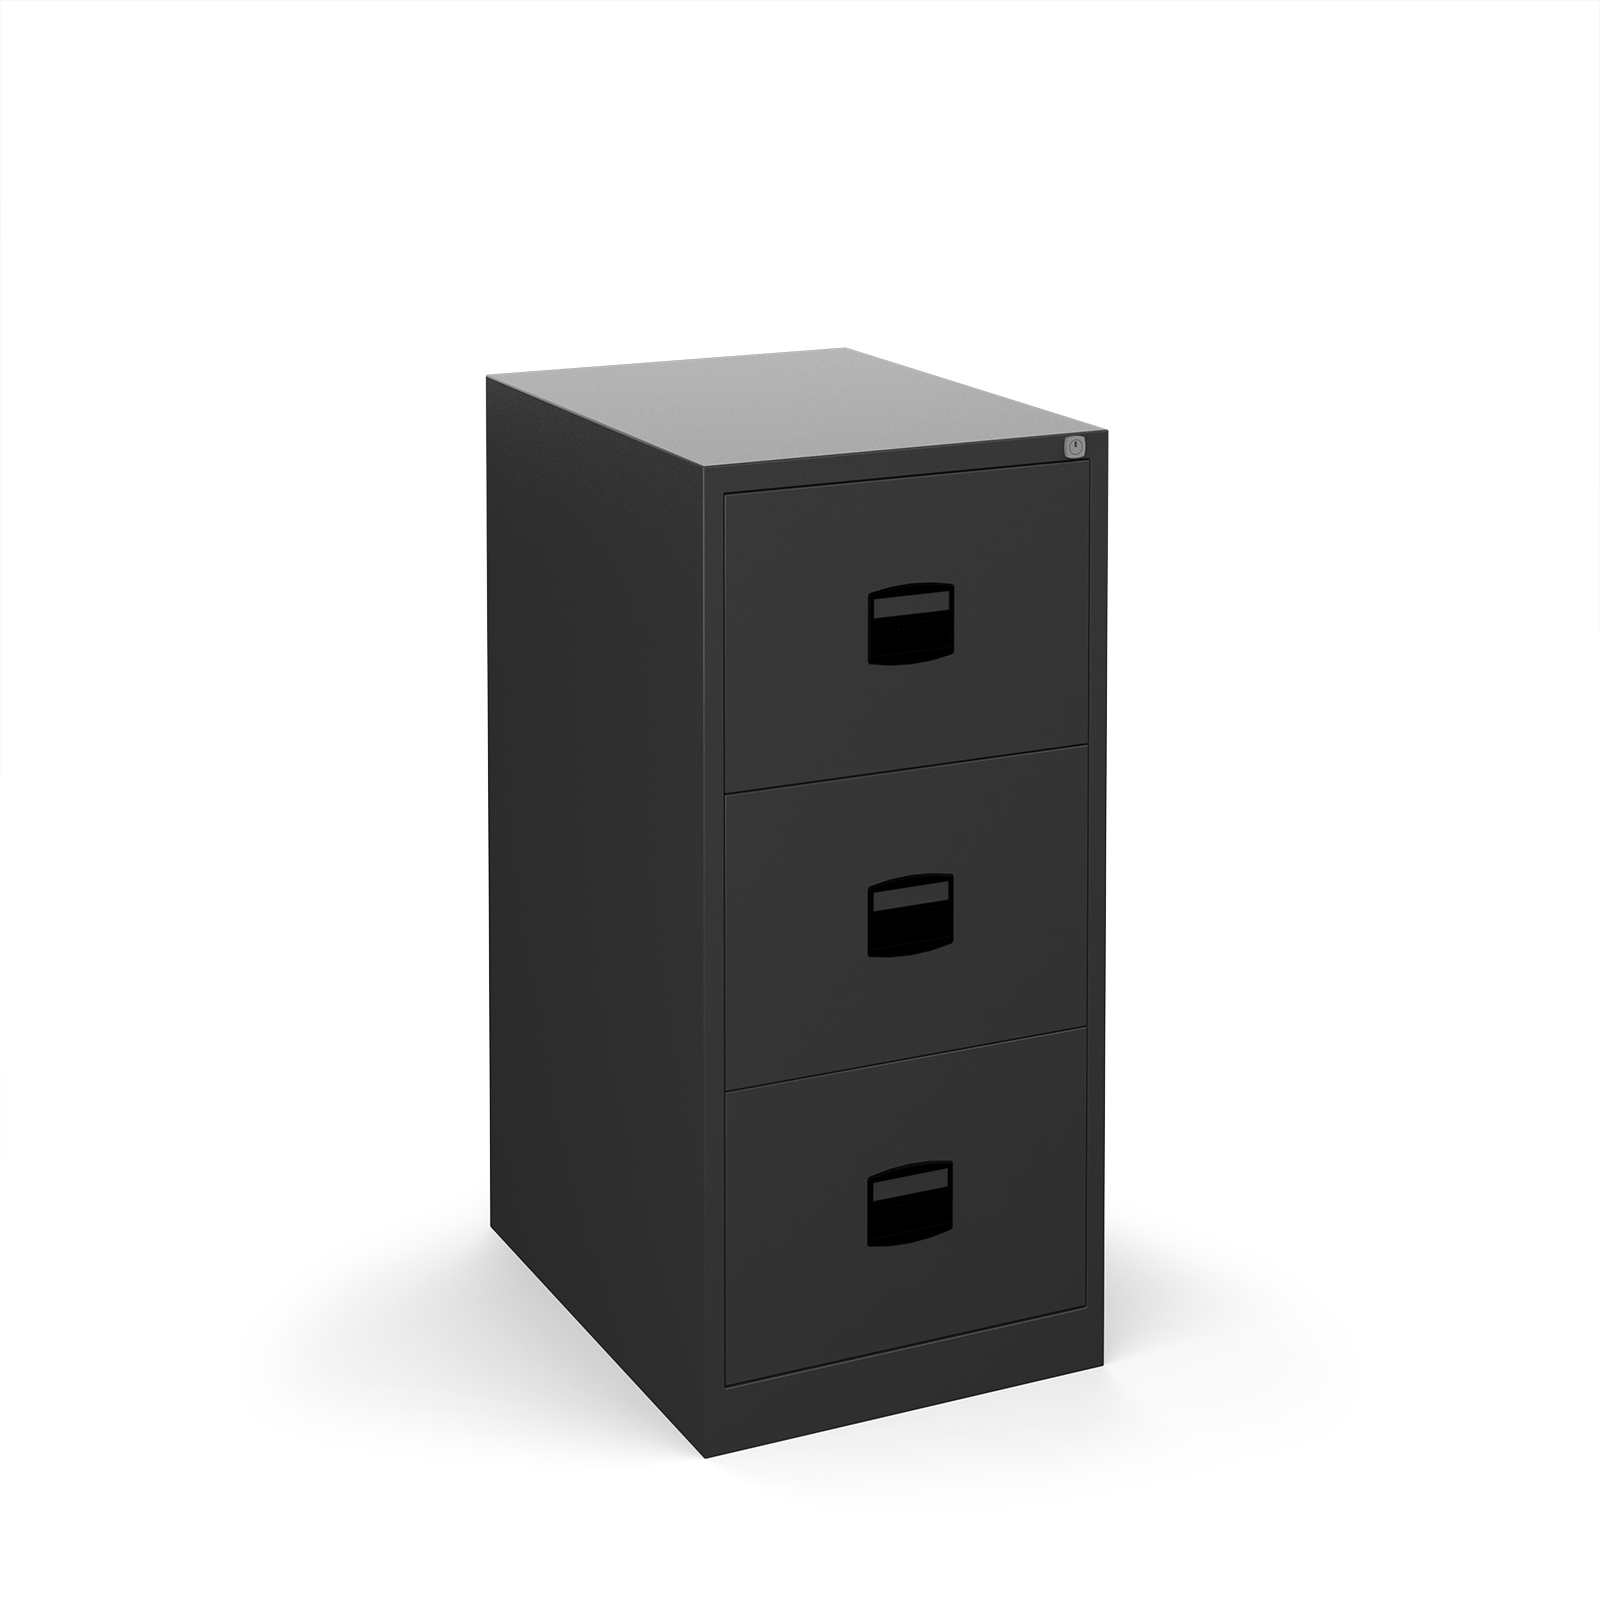 Steel Steel 3 drawer contract filing cabinet 1016mm high - black